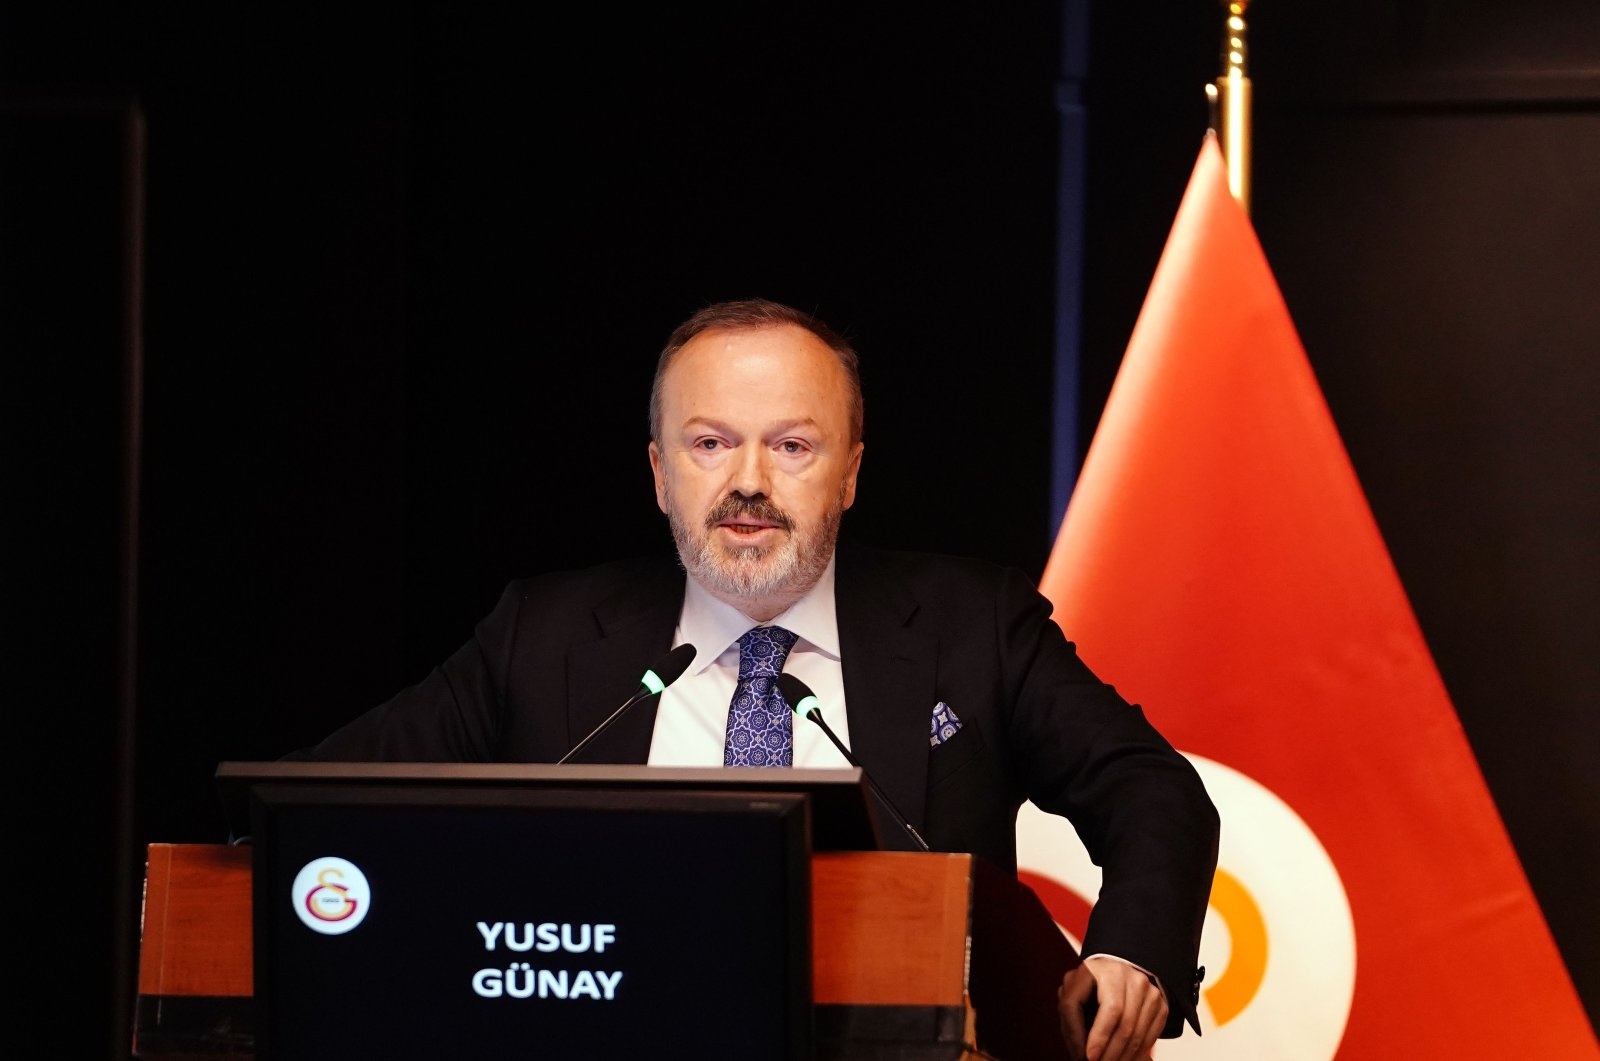 Galatasaray Deputy Chairman Yusuf Günay gives a speech in this undated photo. (AA Photo)